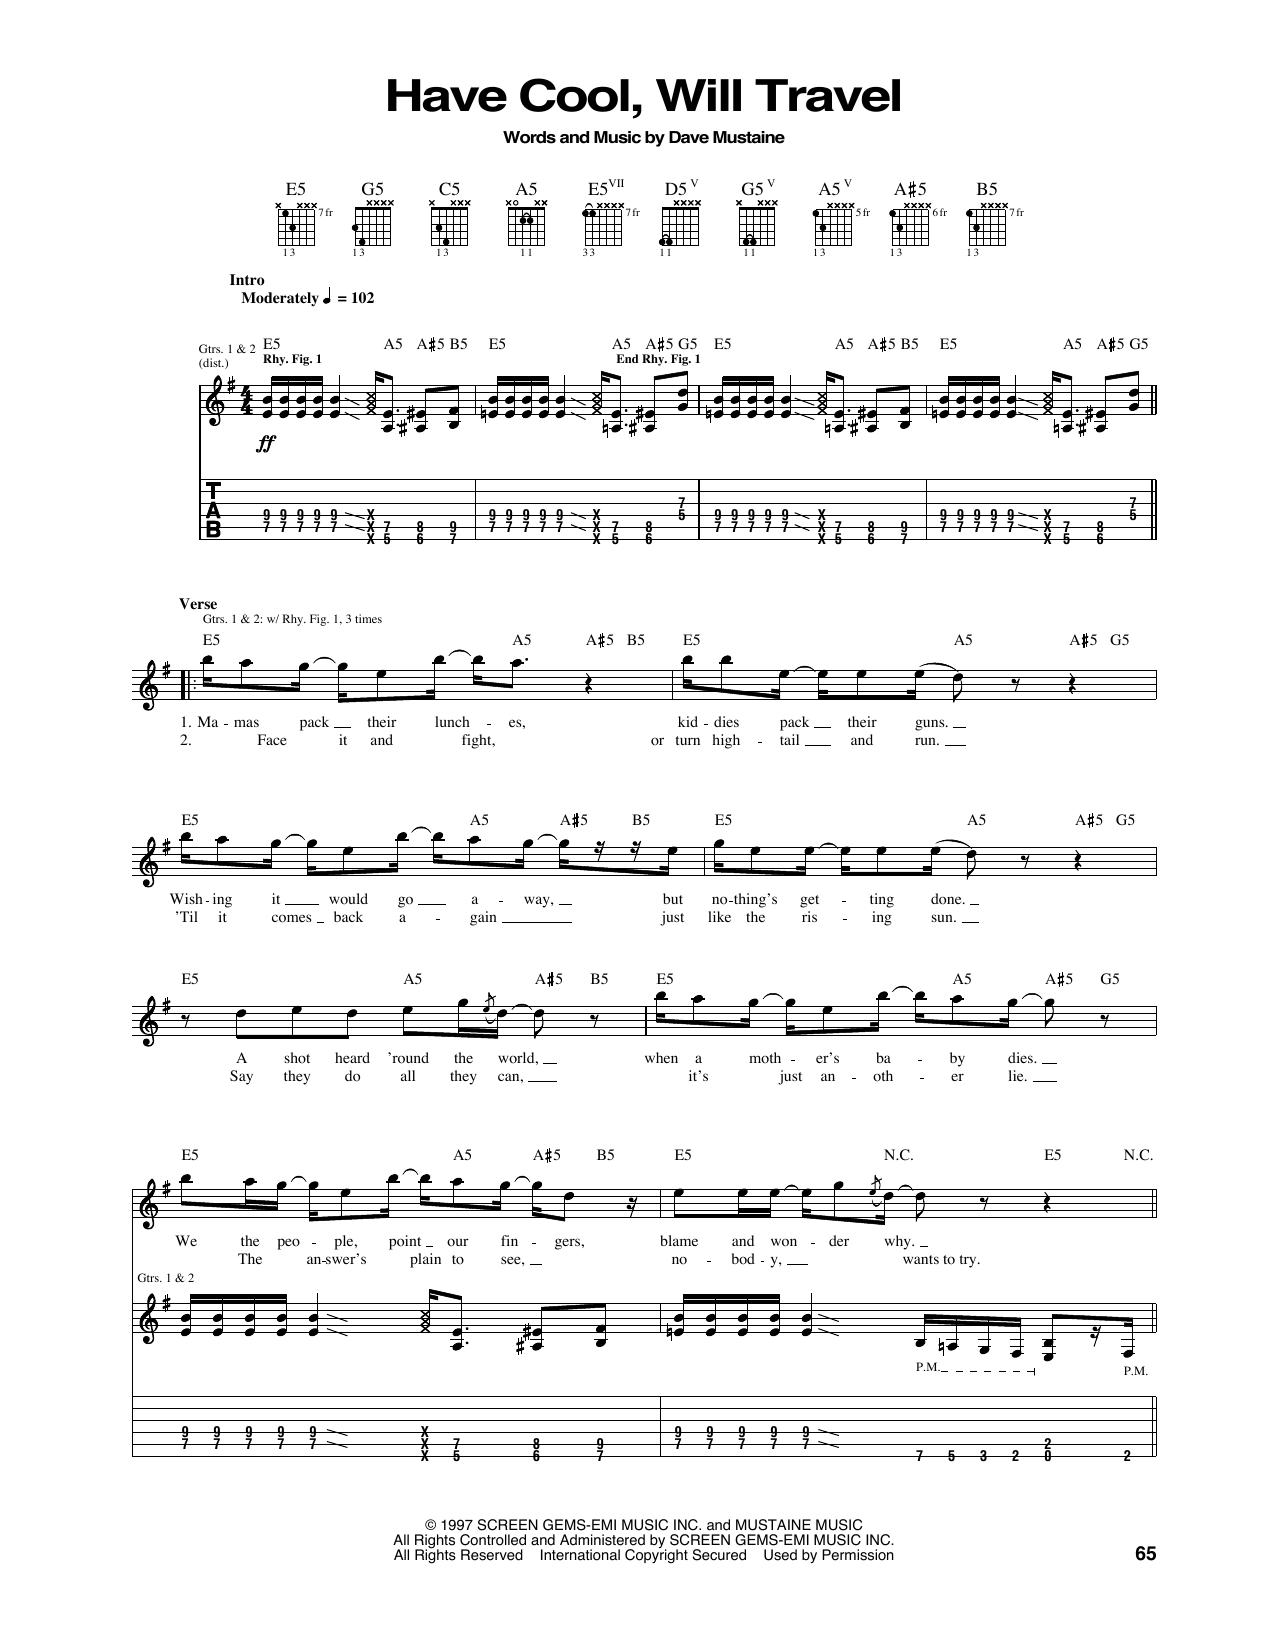 Have Cool, Will Travel Sheet Music